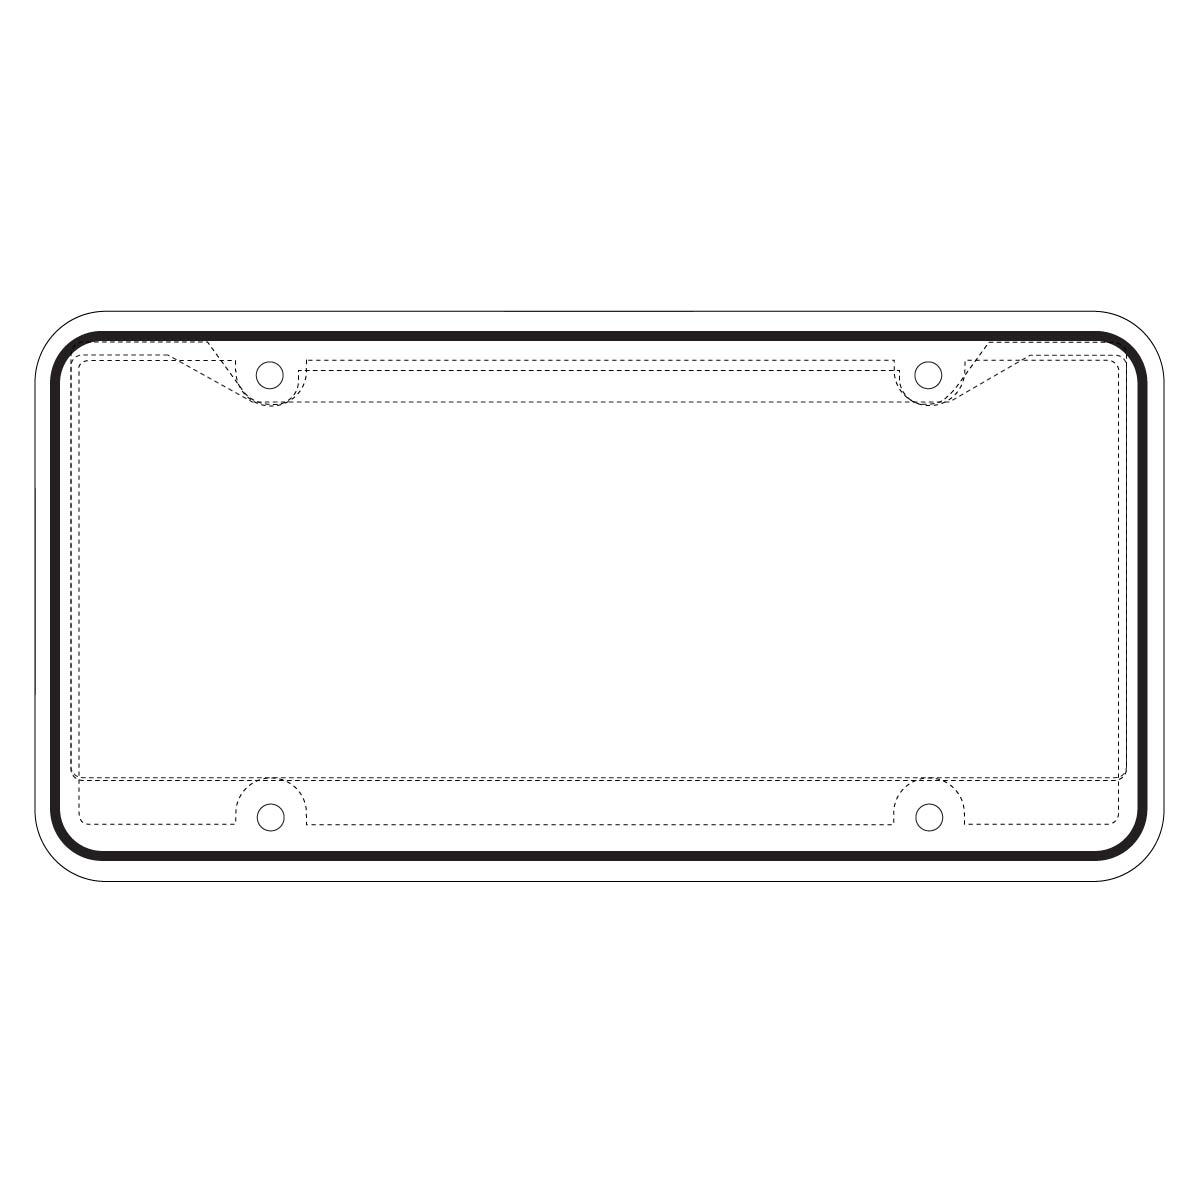 Upload Your Own Custom High View Frame